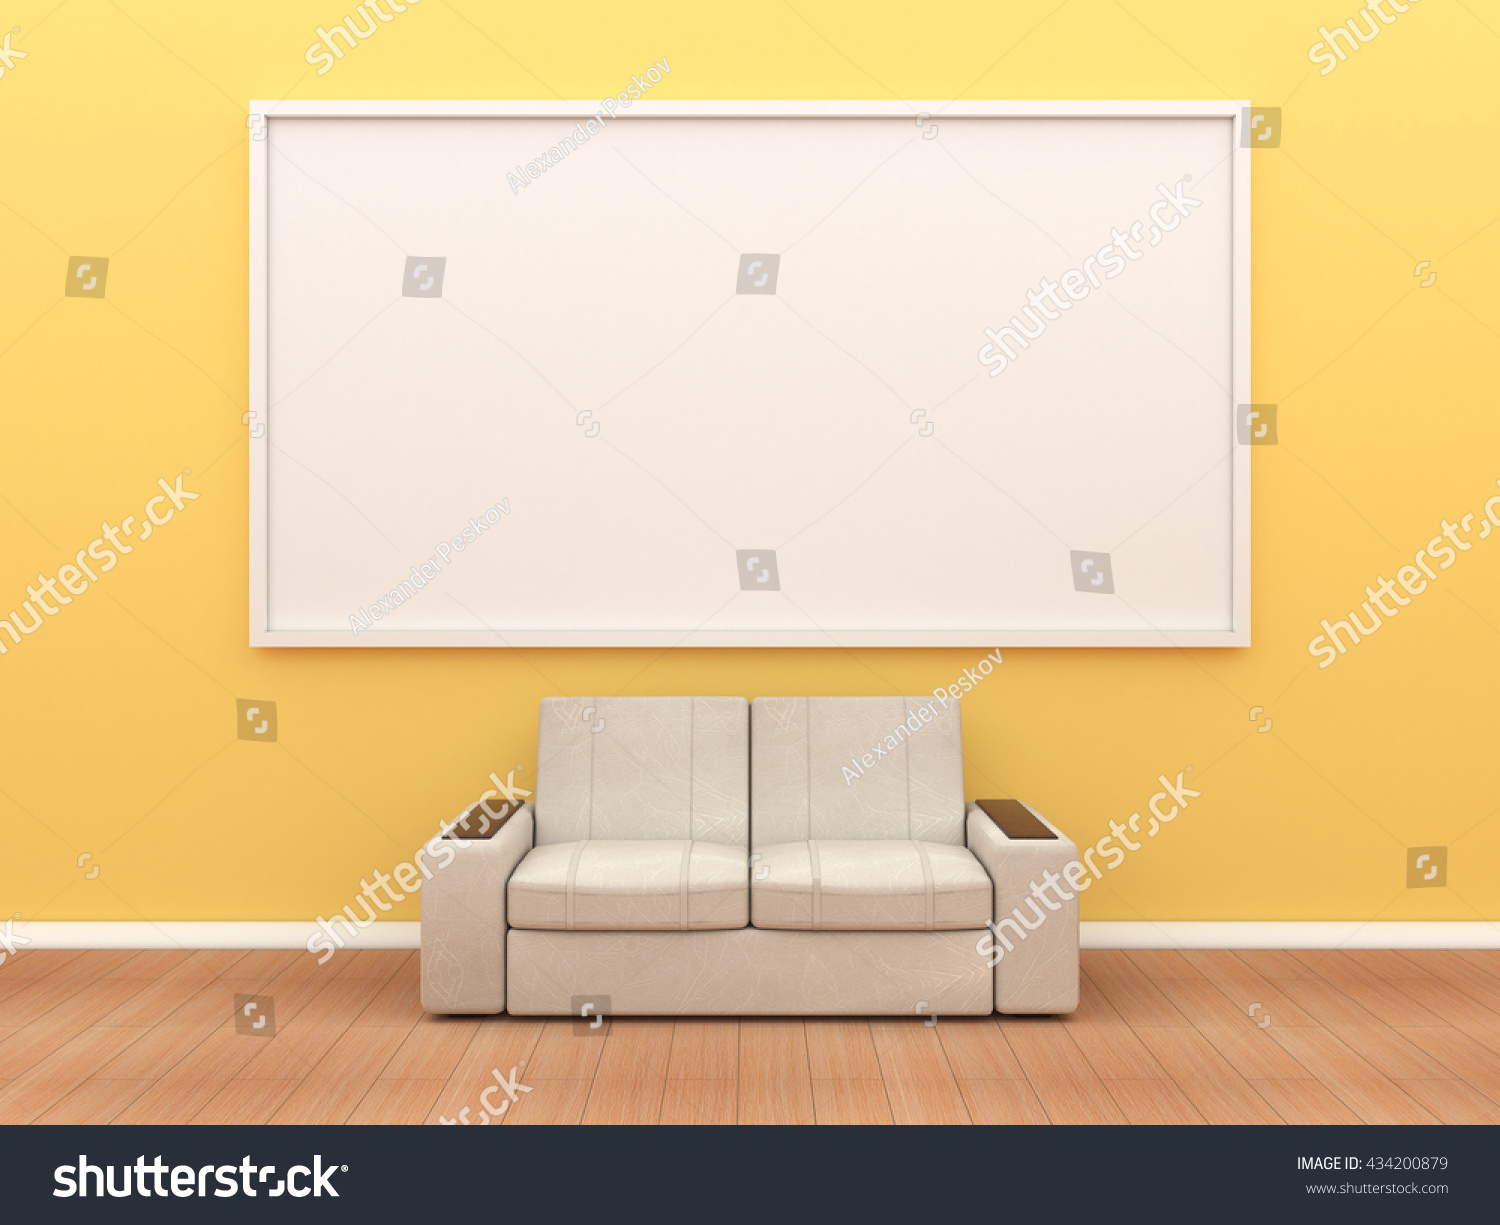 Sofa large frame on yellow wall stock illustration for Large a frame